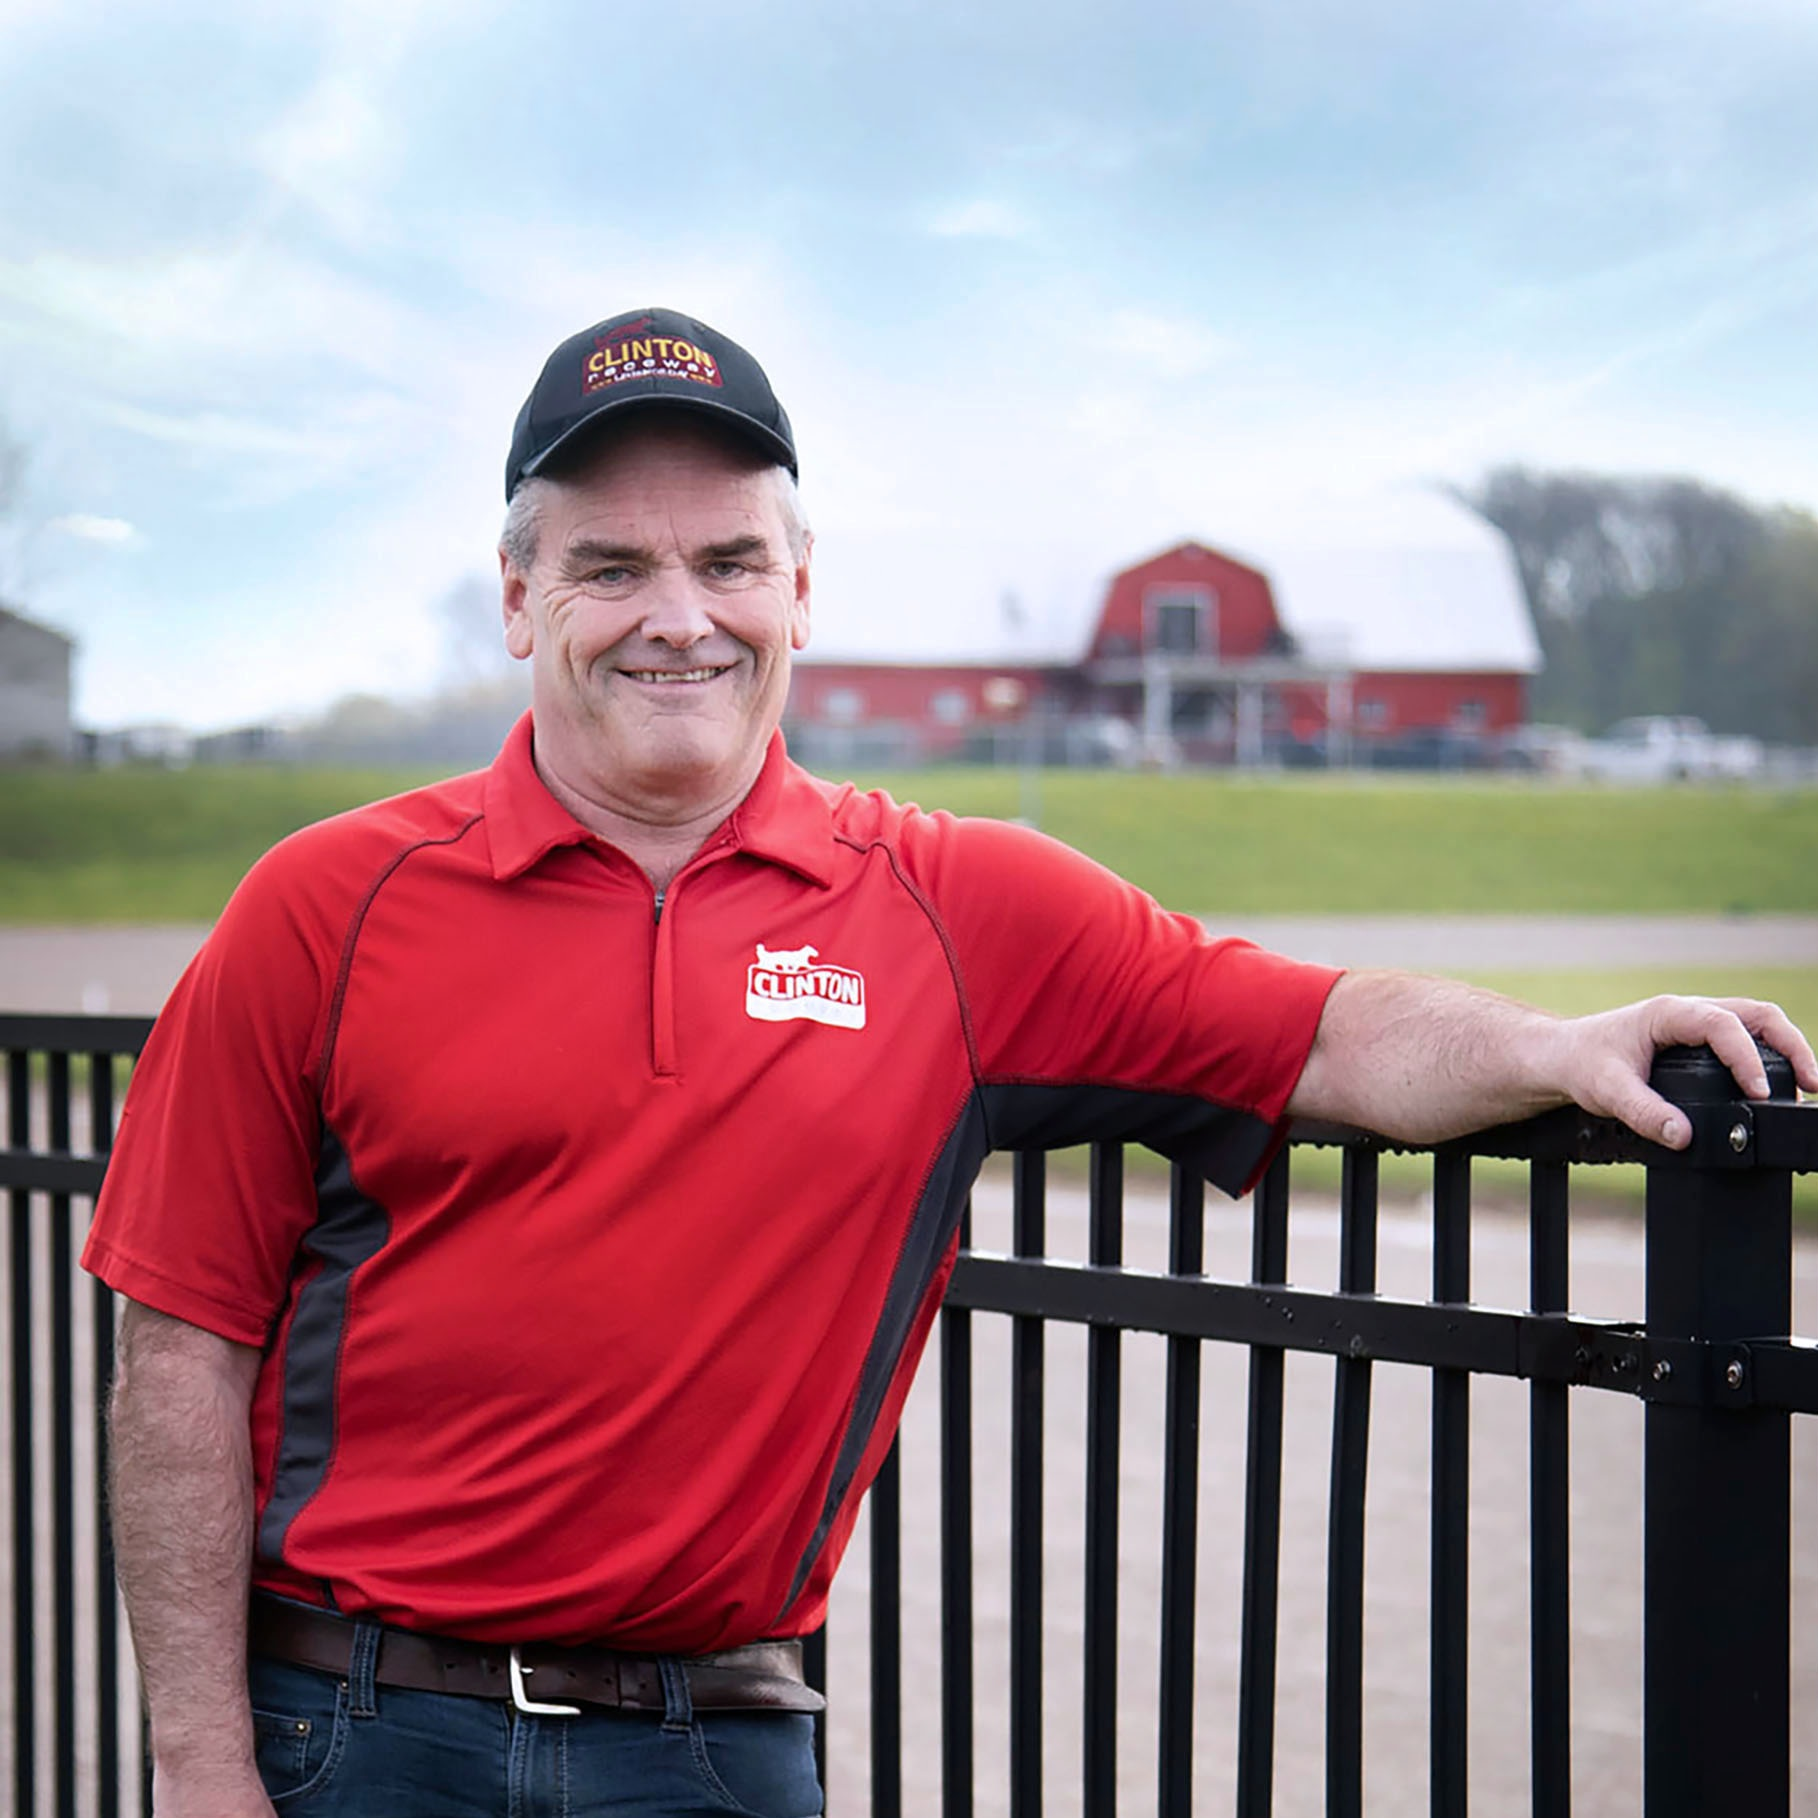 Join us as we celebrate our GM's induction into the Horse Racing Hall of Fame. Ian Fleming will be honoured on Legends Day with a race dedication (Race 5) and complimentary cake.